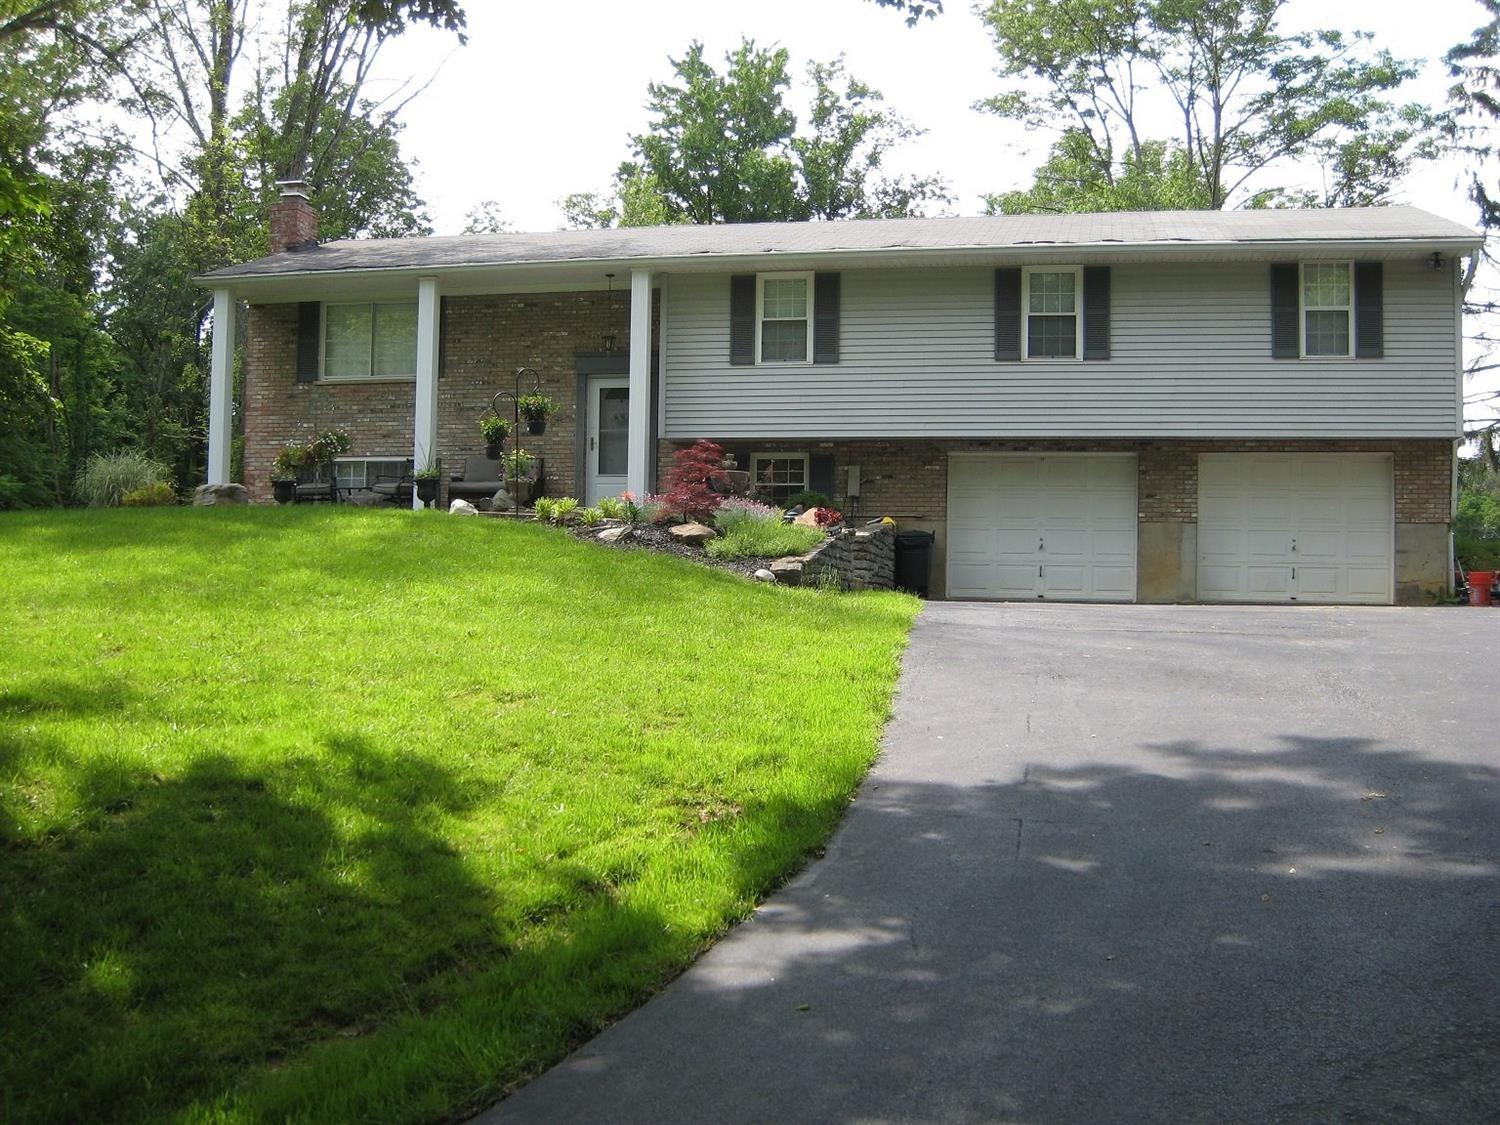 700 Loveland Miamiville Rd Miami Twp. (East), OH